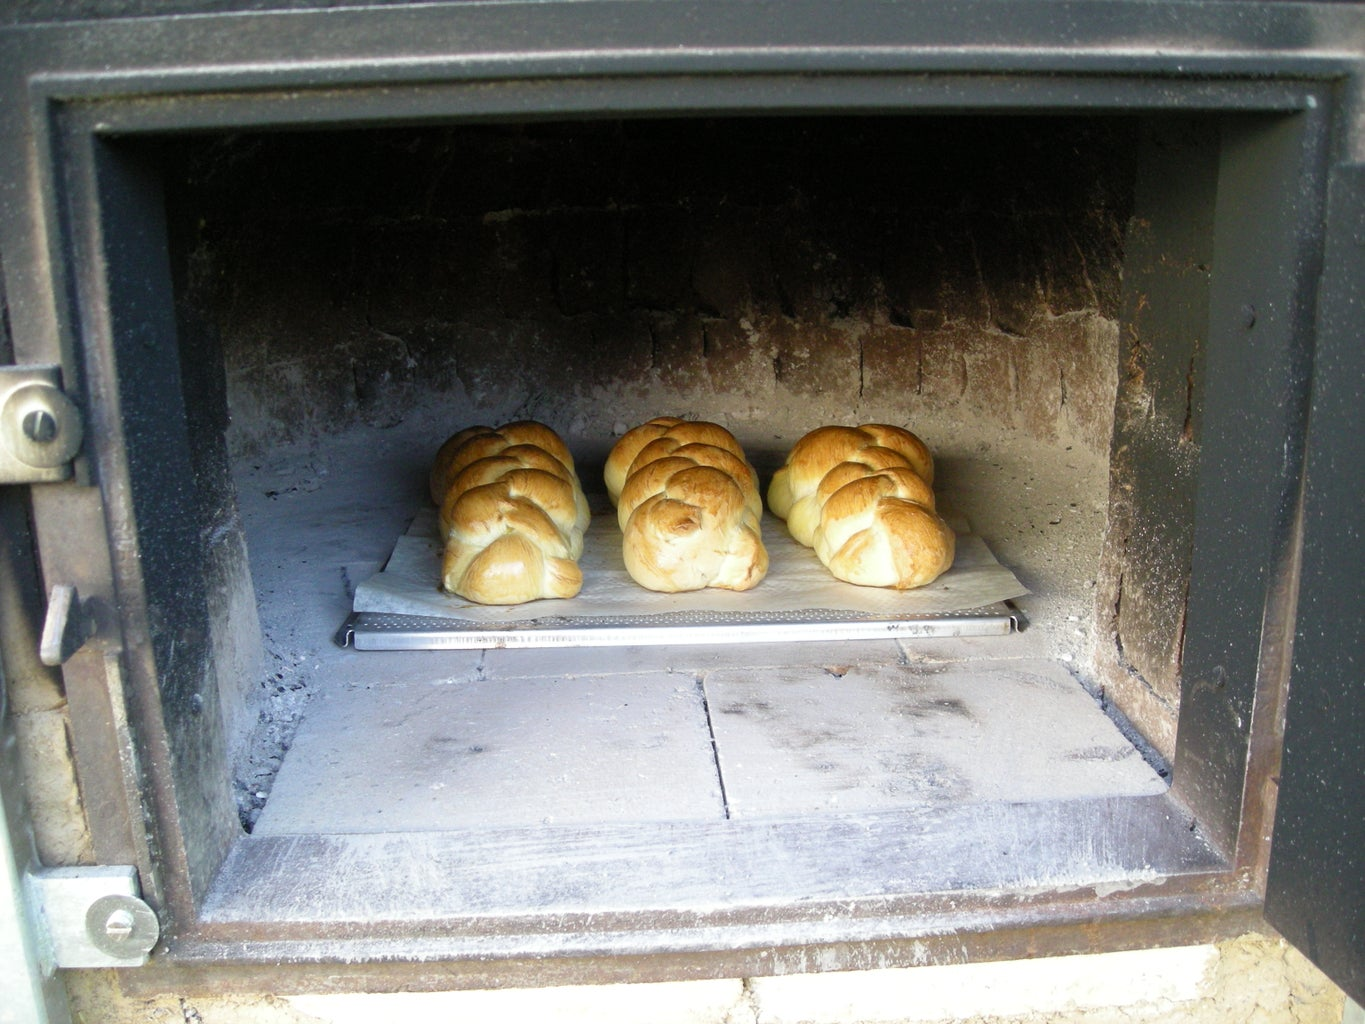 Using the Oven